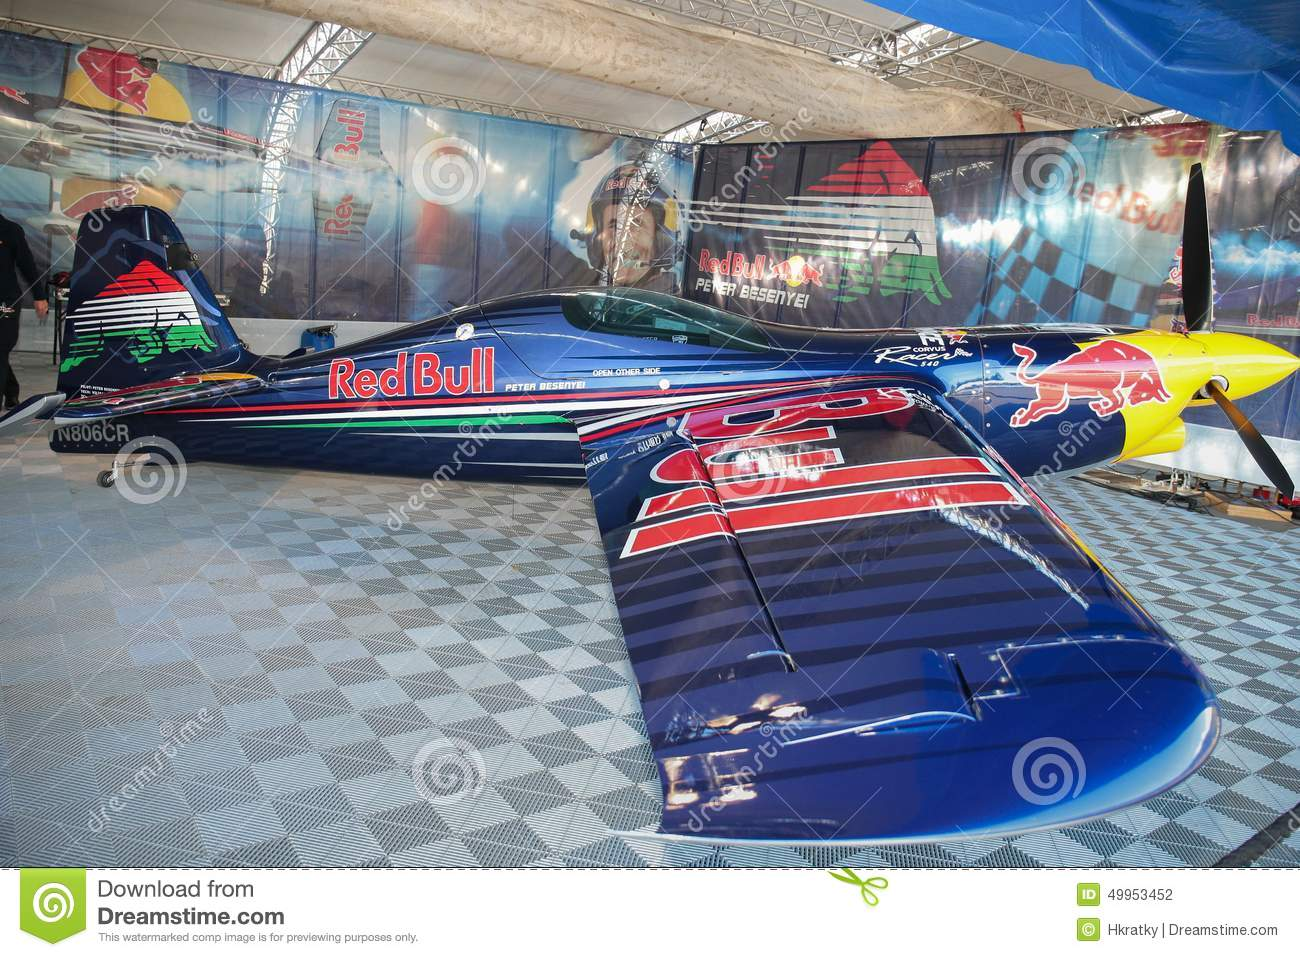 Red bull racing clipart.